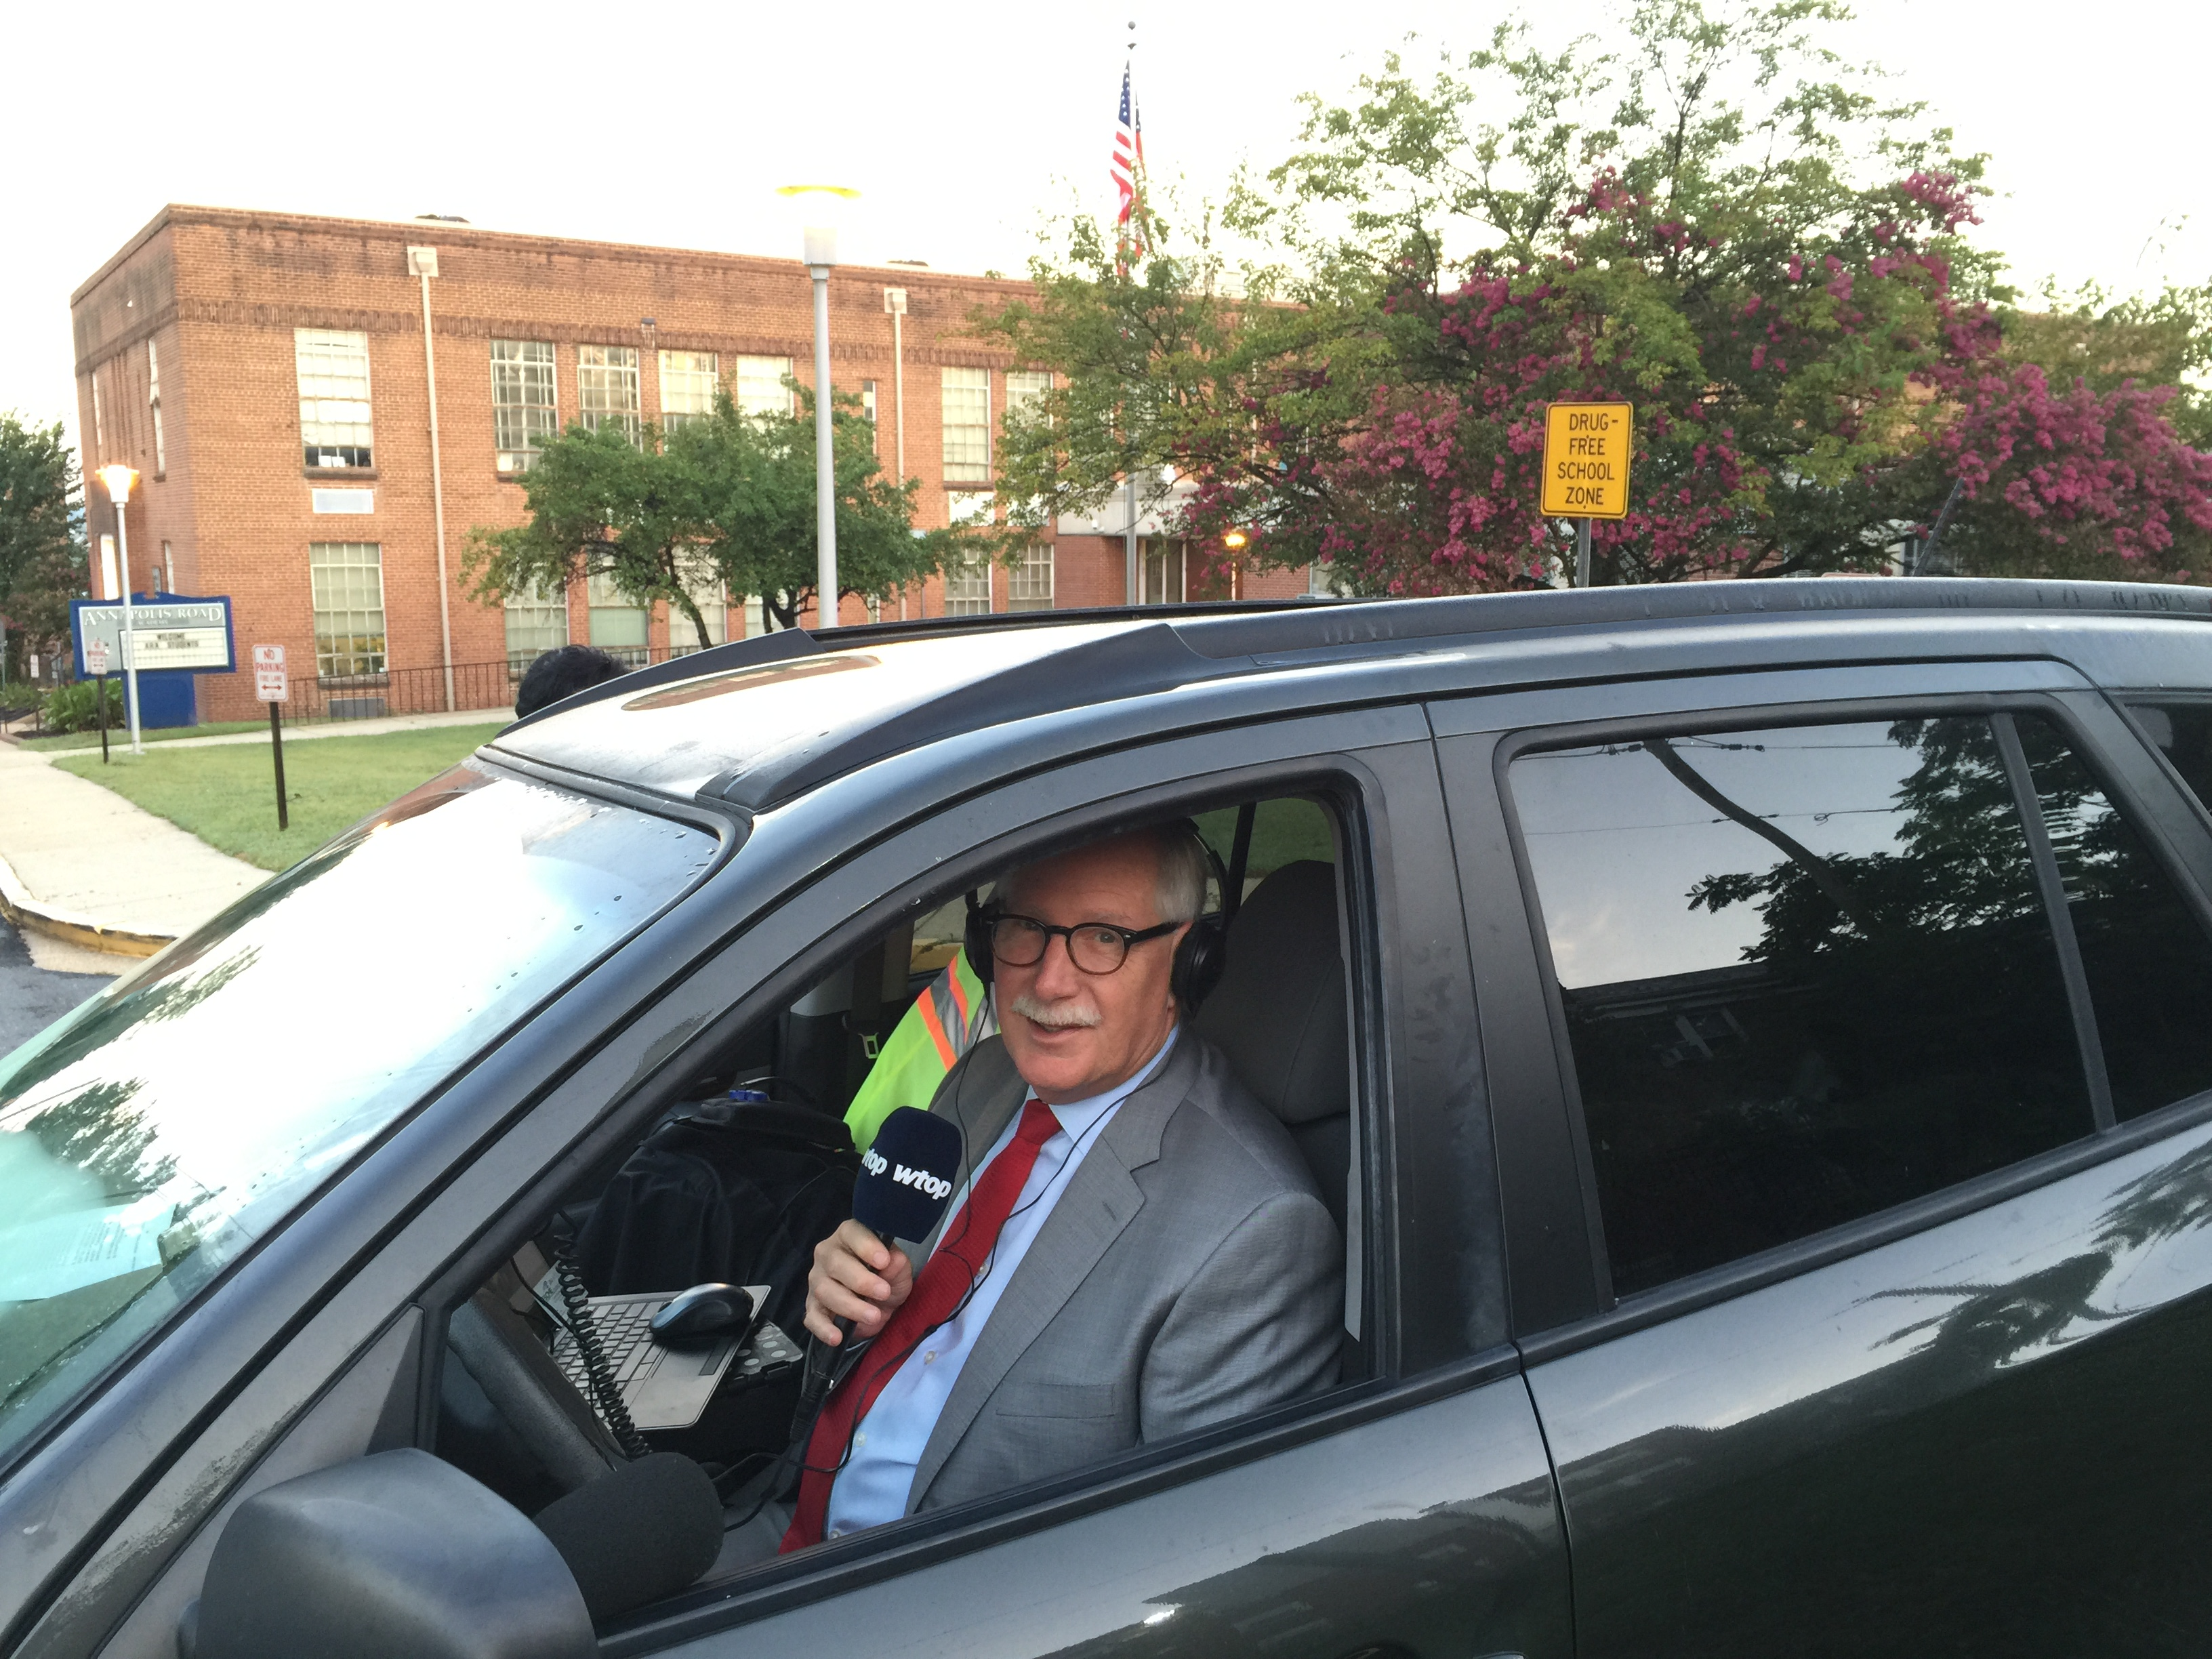 Prince George's school CEO sees a smooth opening day